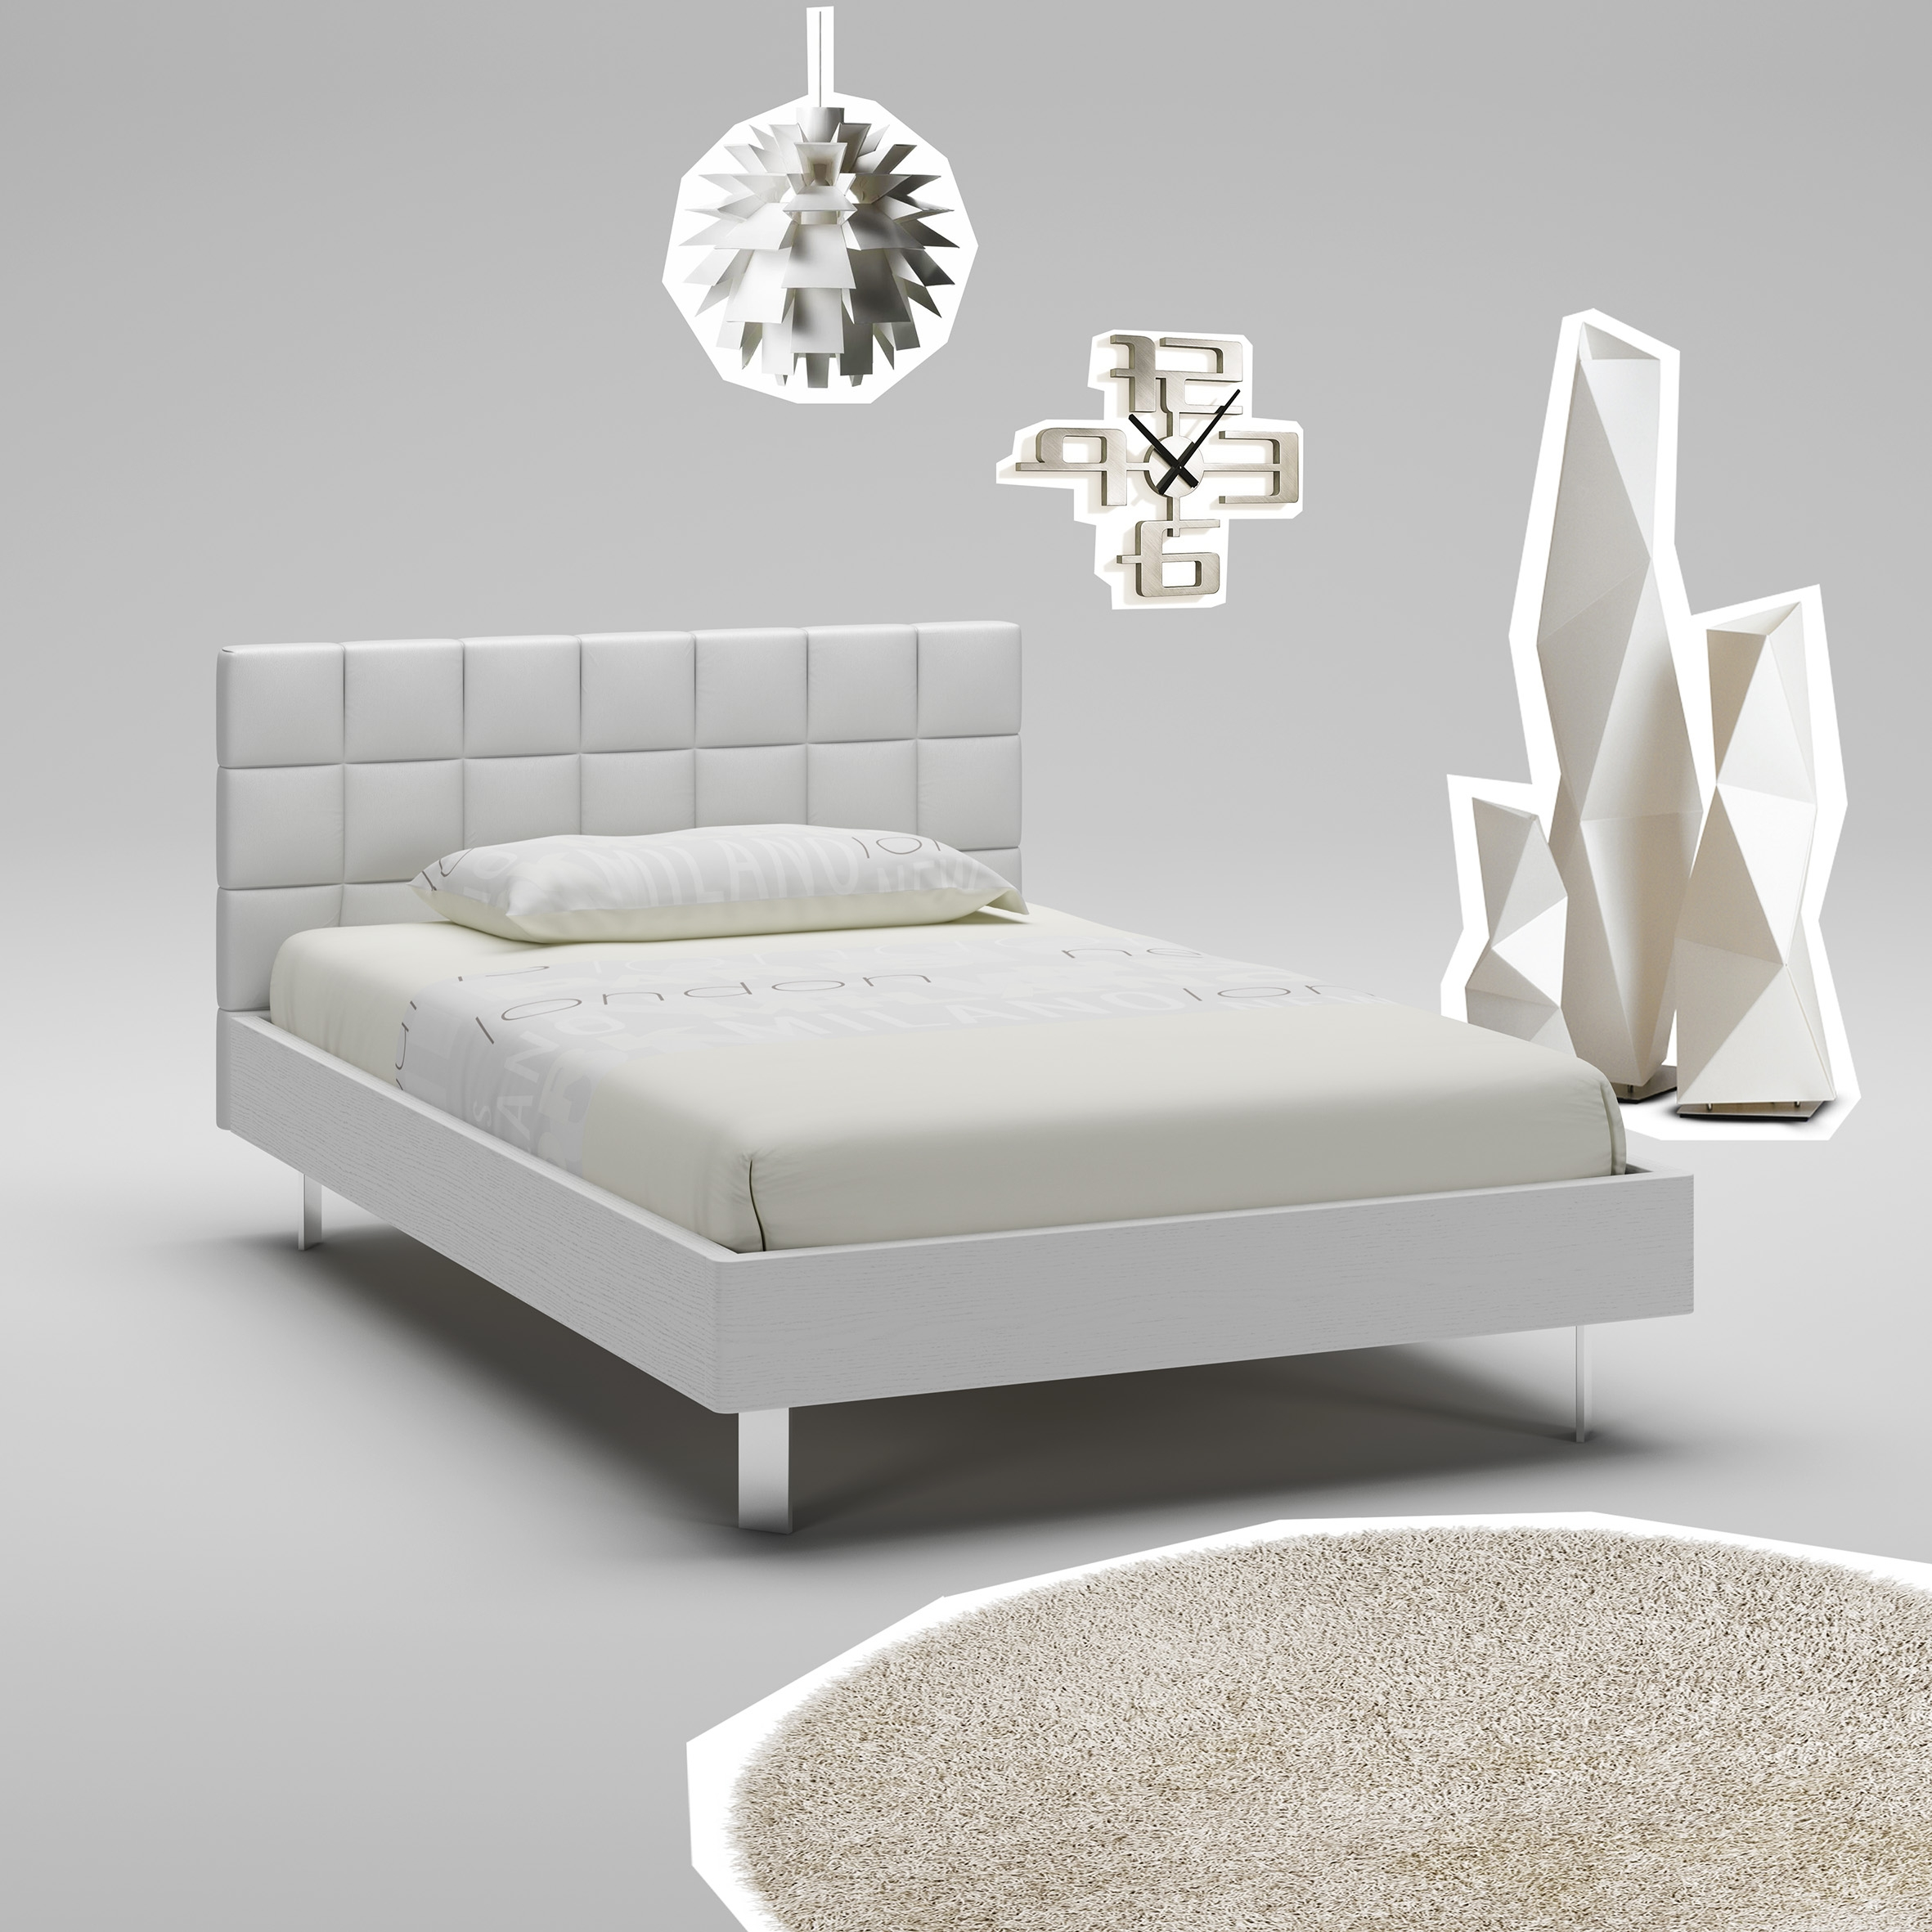 lit ado blanc avec t te de lit rembourr e moretti compact so nuit. Black Bedroom Furniture Sets. Home Design Ideas